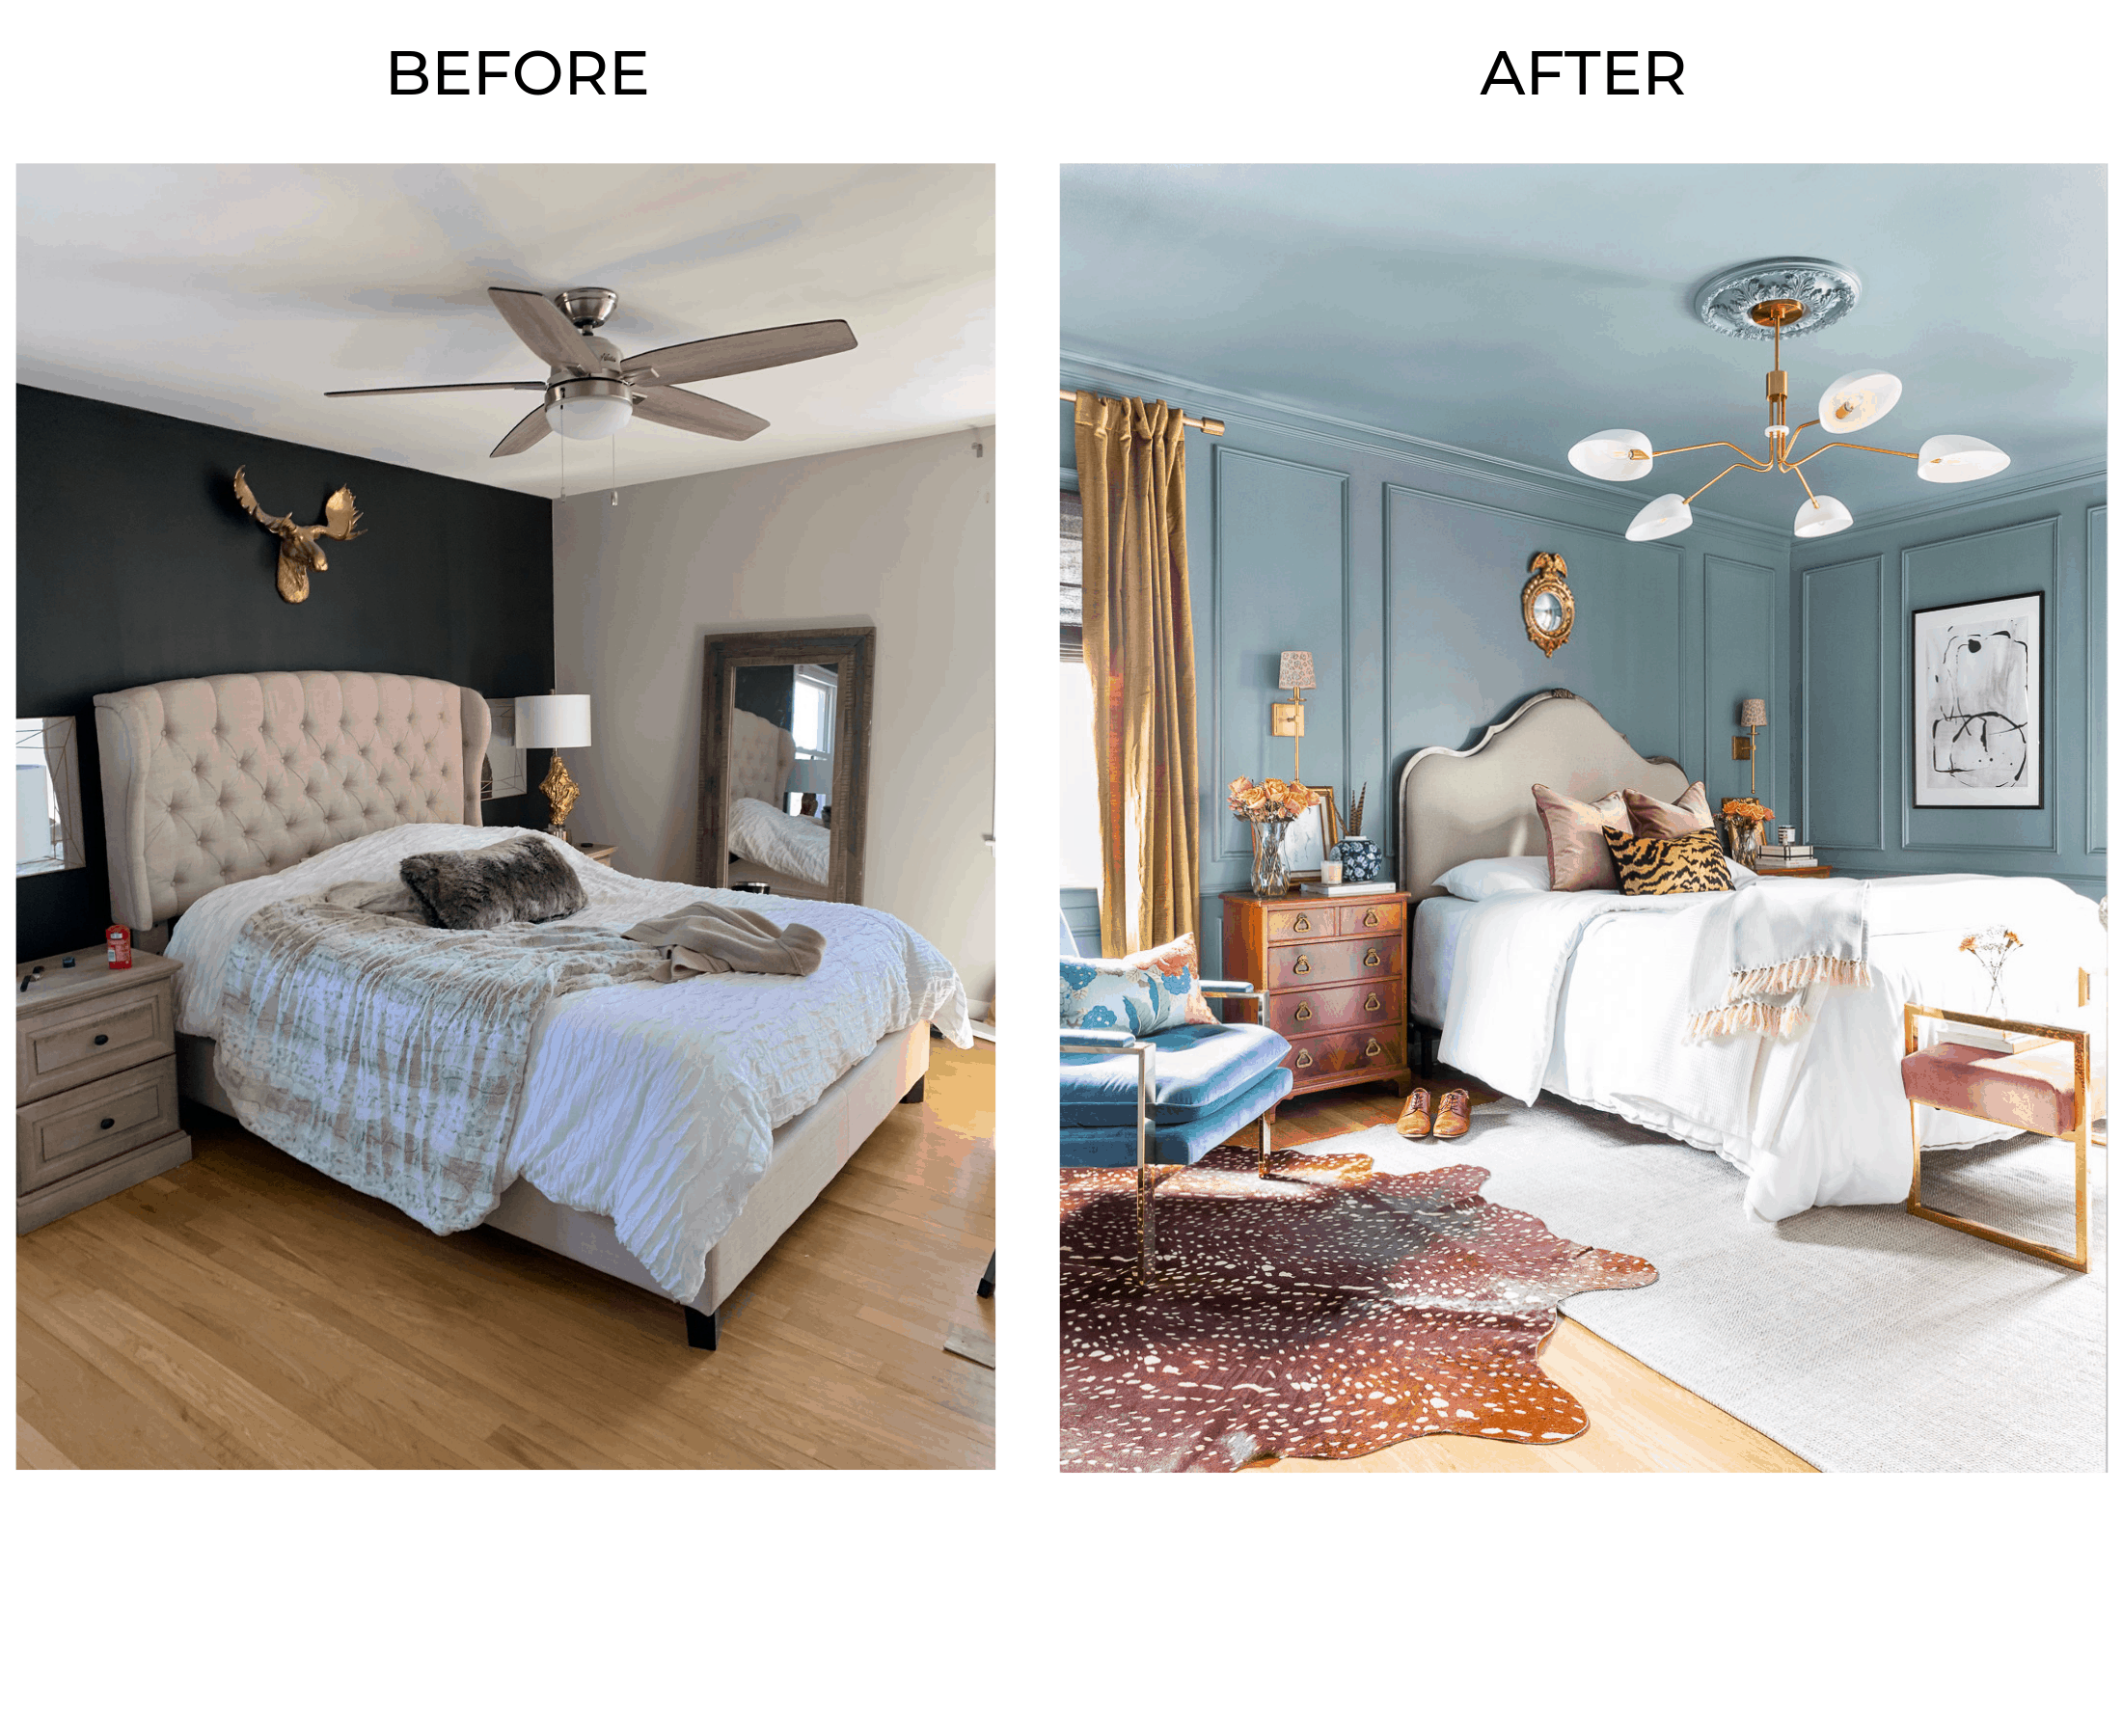 Pin By Carol Bodurtha On Before After Renovations With Images